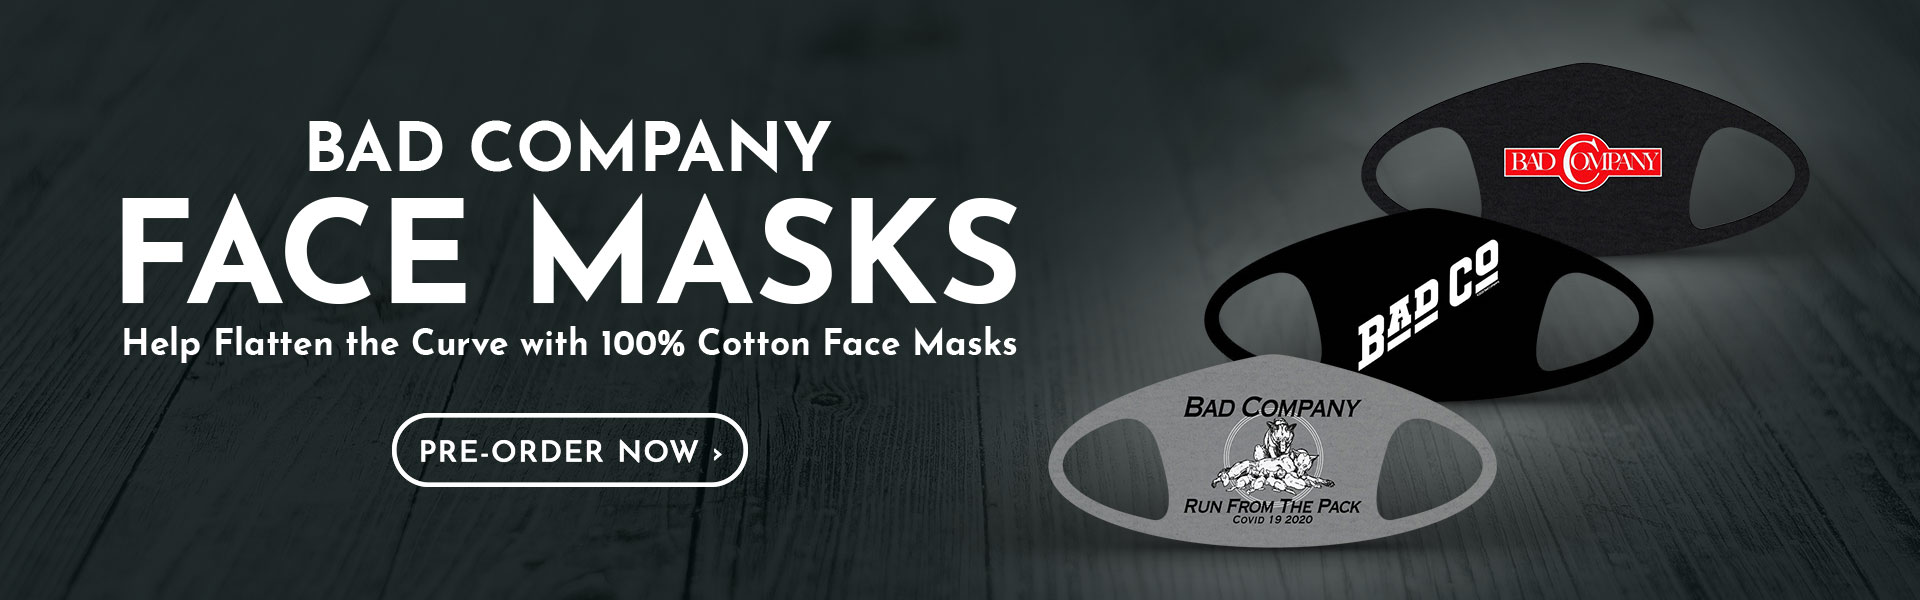 Bad Co. Masks